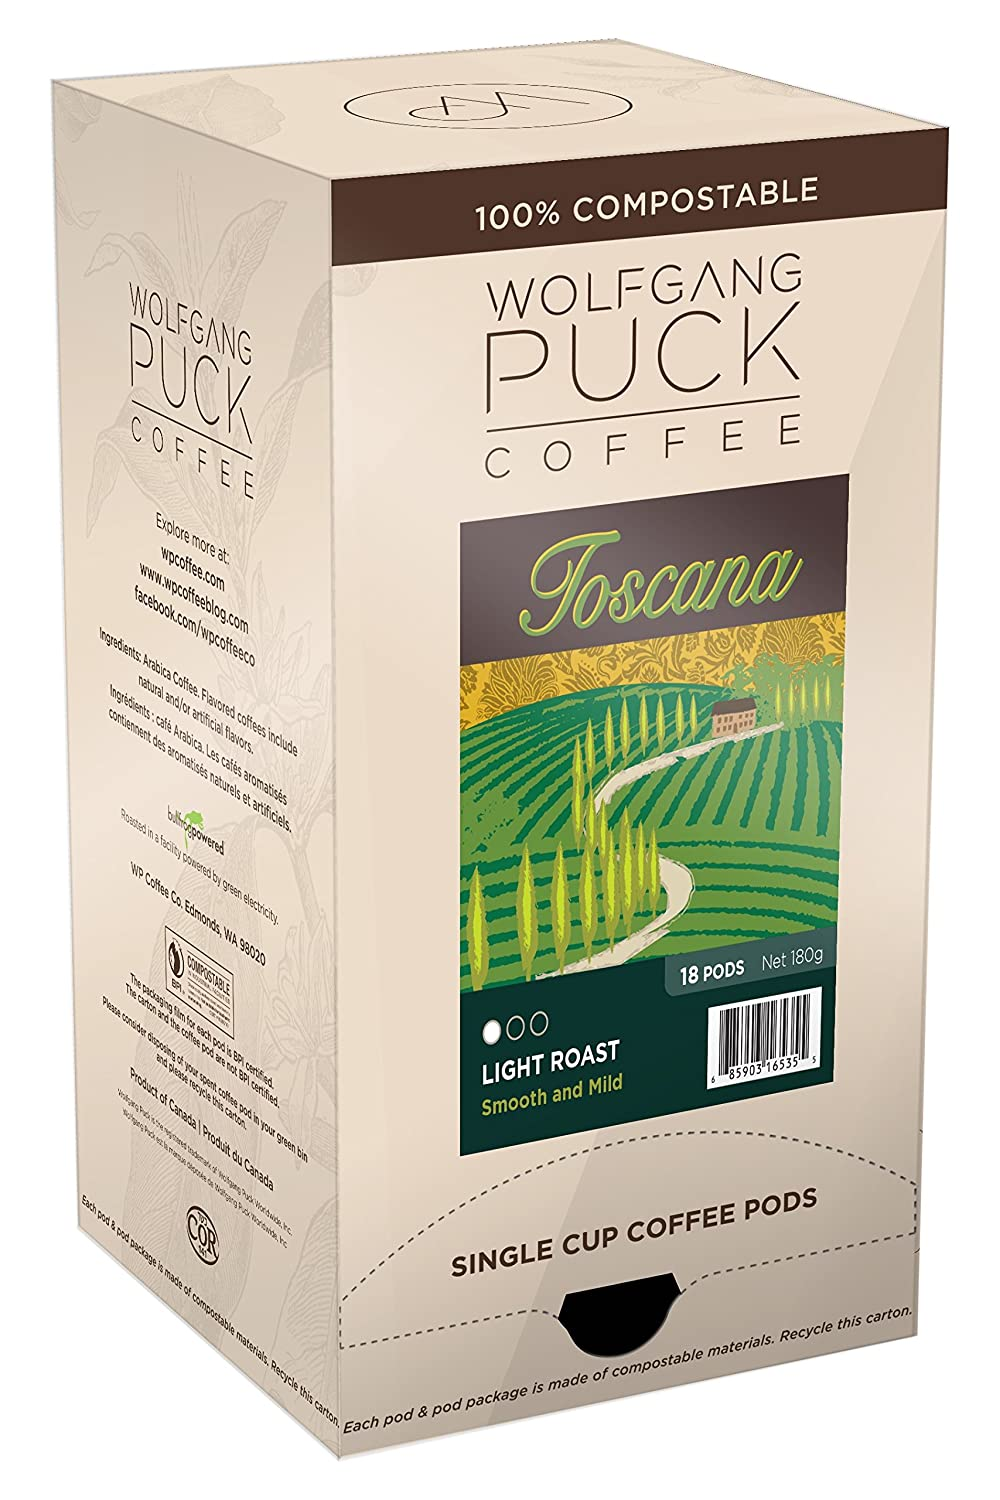 Wolfgang Puck Soft Coffee Pods, Toscana Coffee, 9.5 Gram, (Pack of 6 -18 Each)